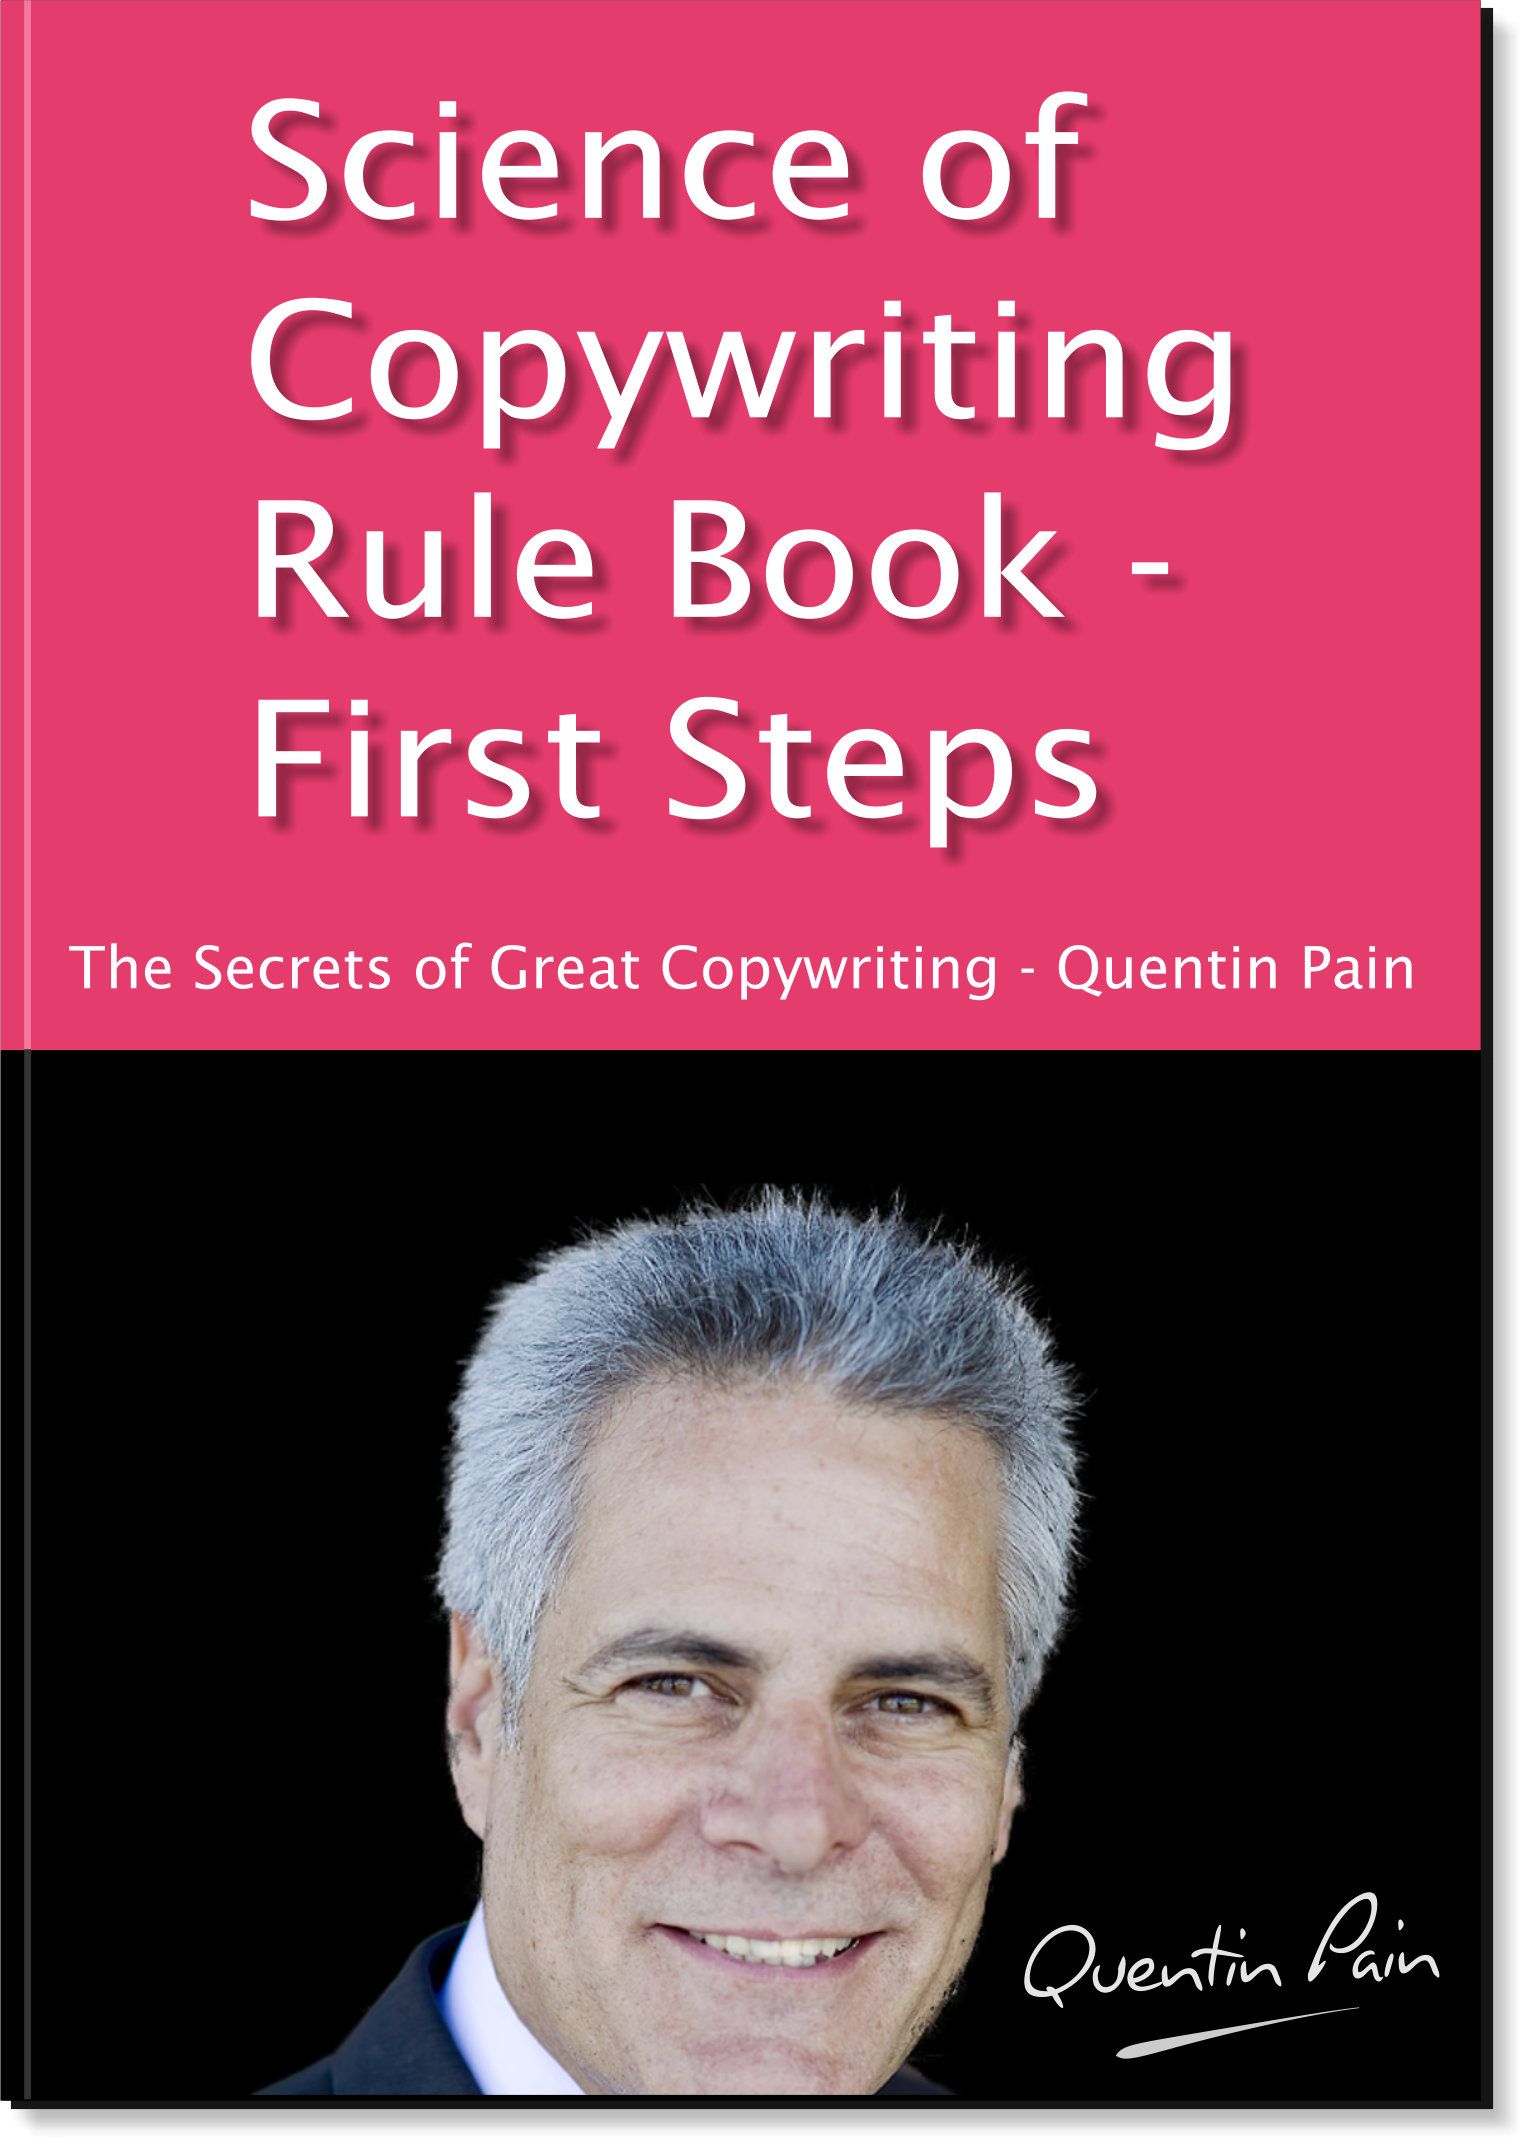 Science of Copywriting Rule Book Image